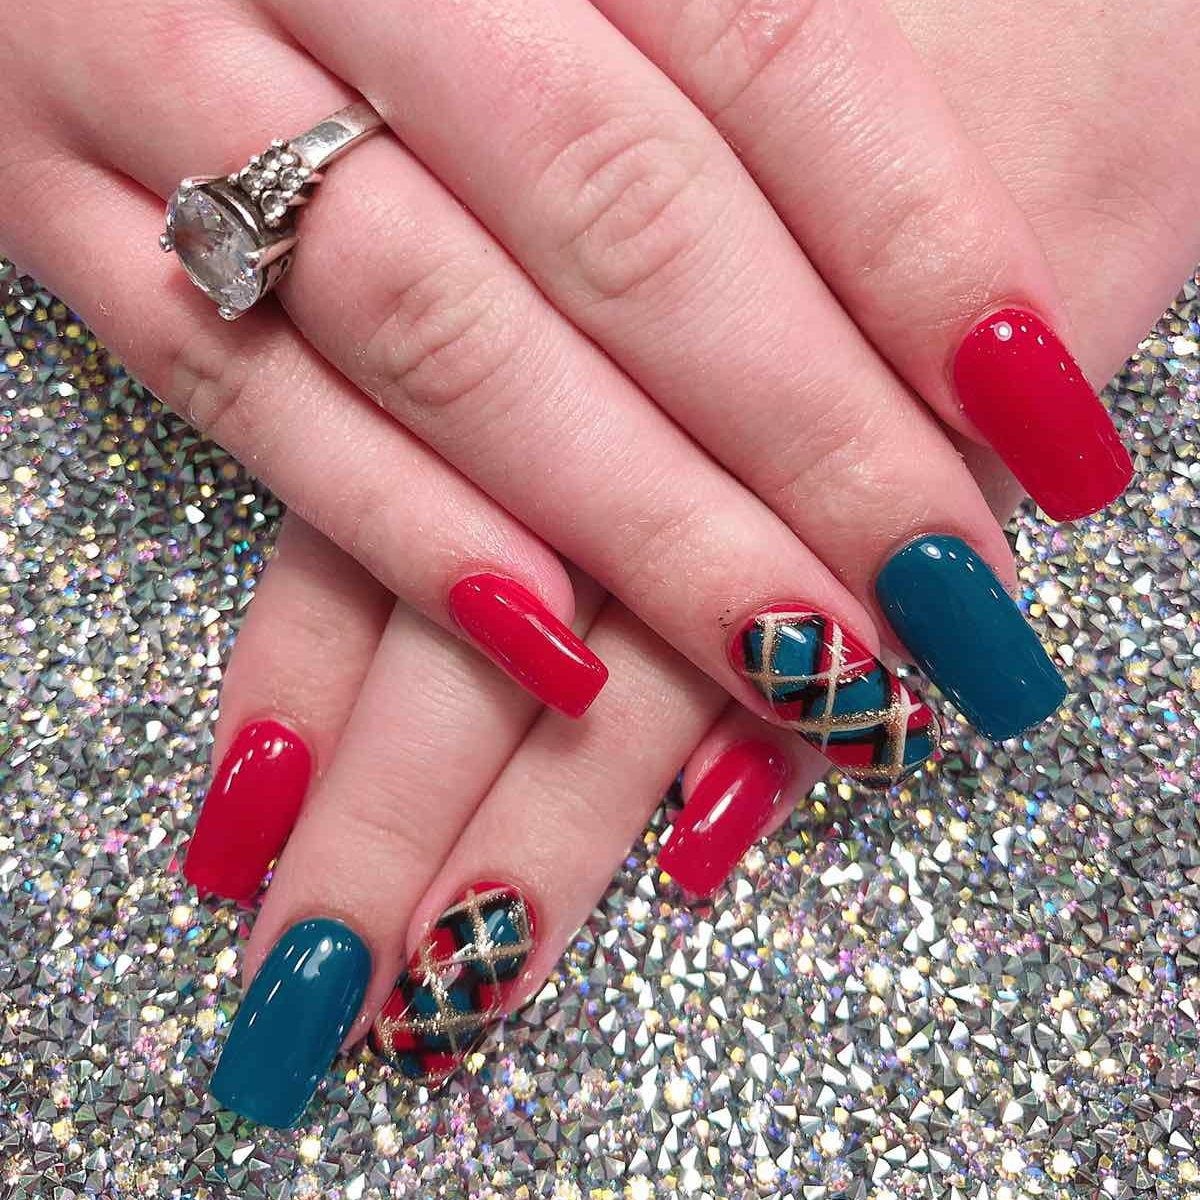 red square acrylic nailwith designs